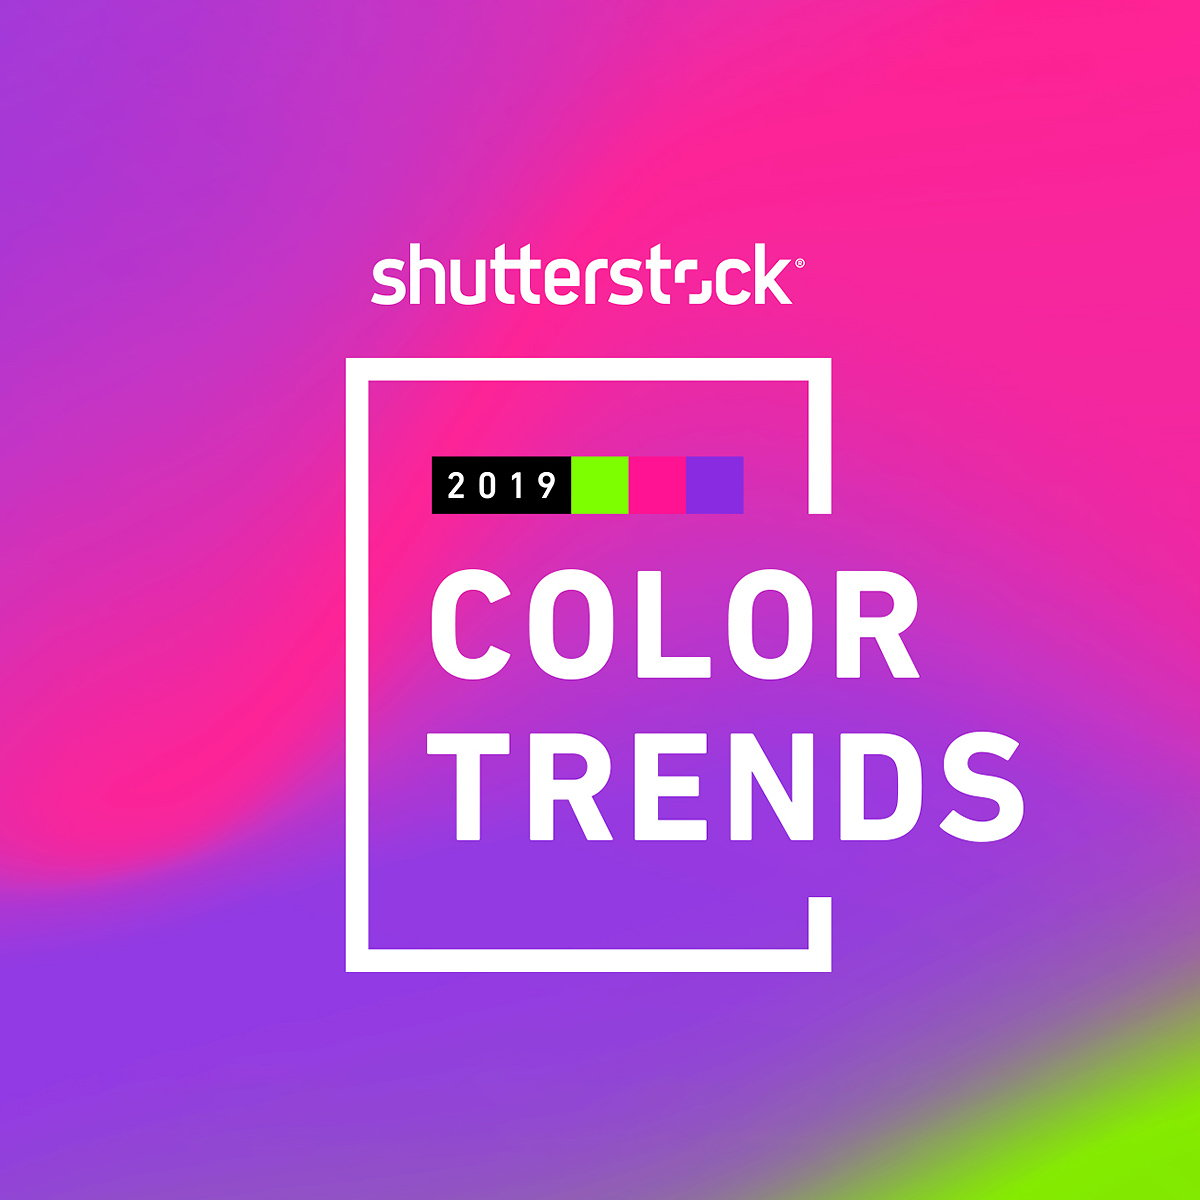 Shutterstock S 2019 Color Trends Report Reveals Pink Green And